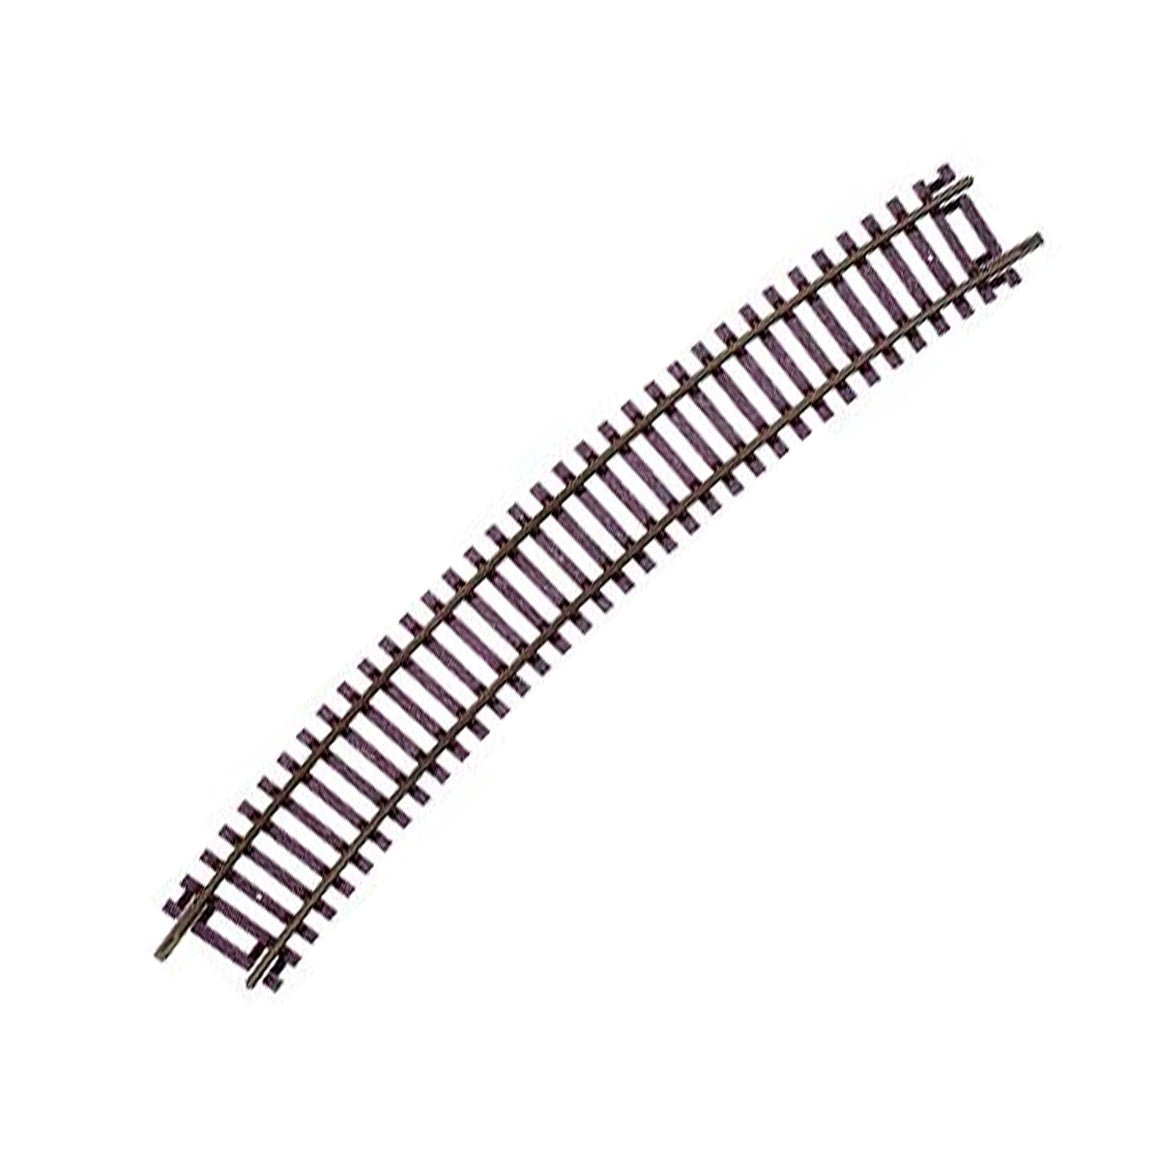 HO Scale: Code 83 Snap Track - Curves - Various Radii - 6 Pack